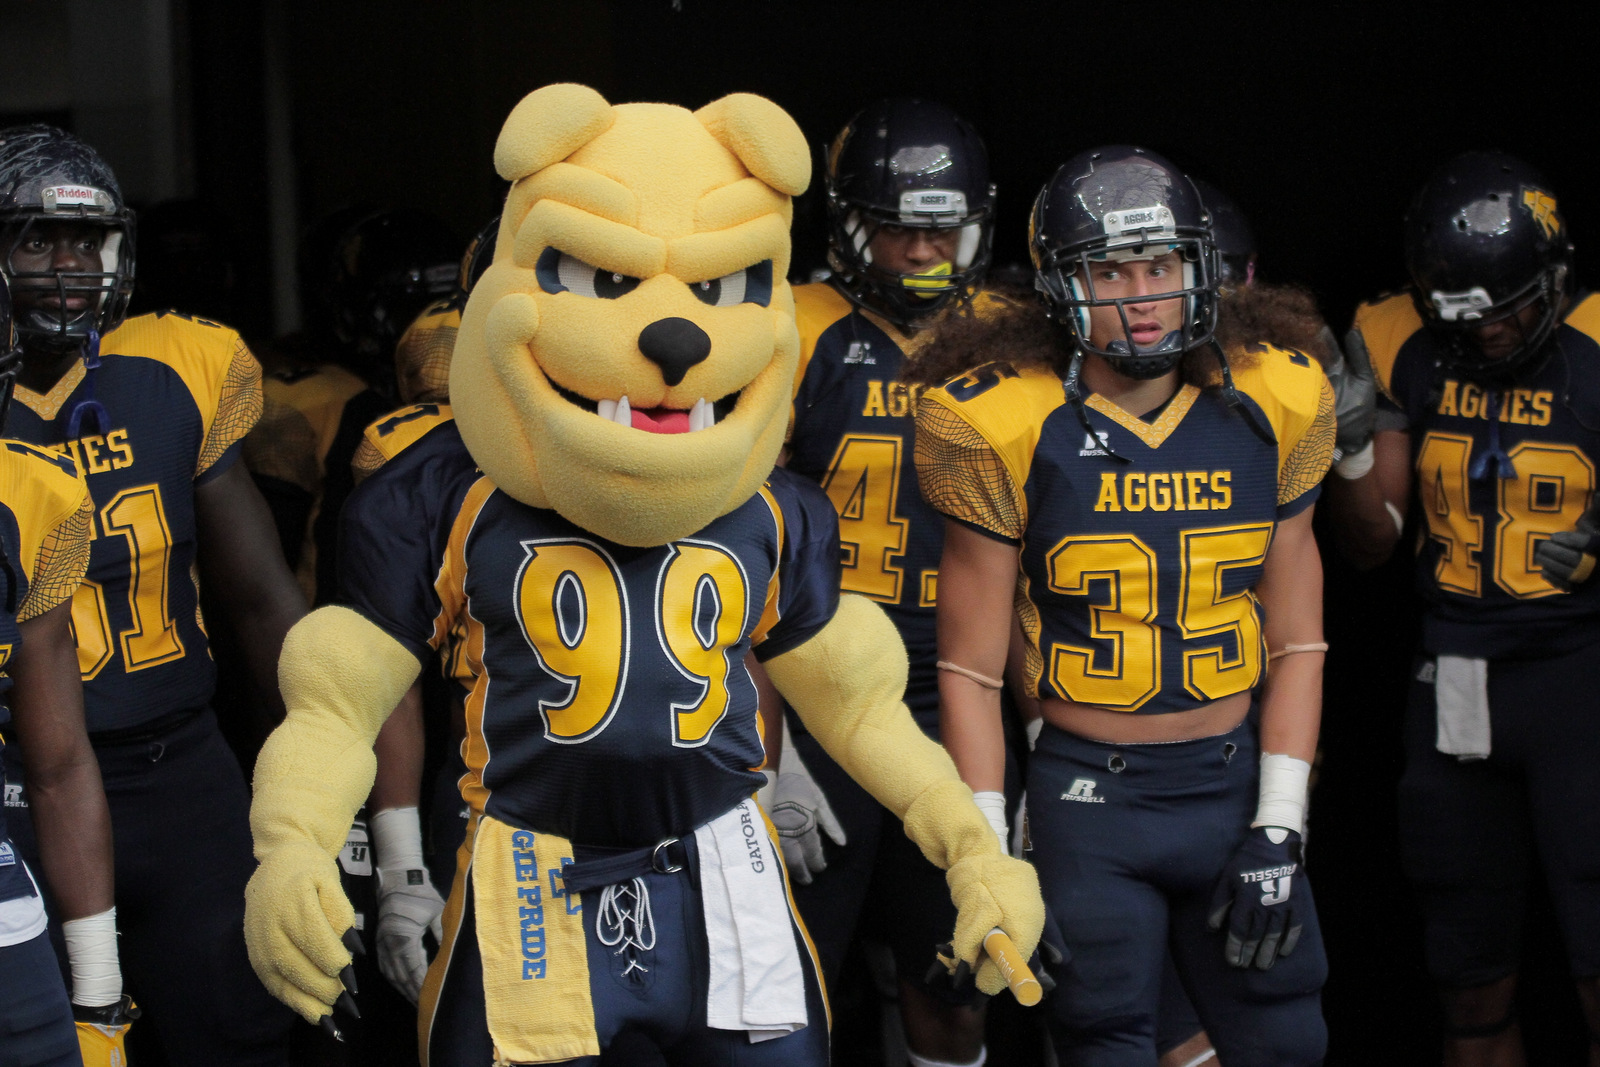 North Carolina A&T Aggies get ready to take the f...